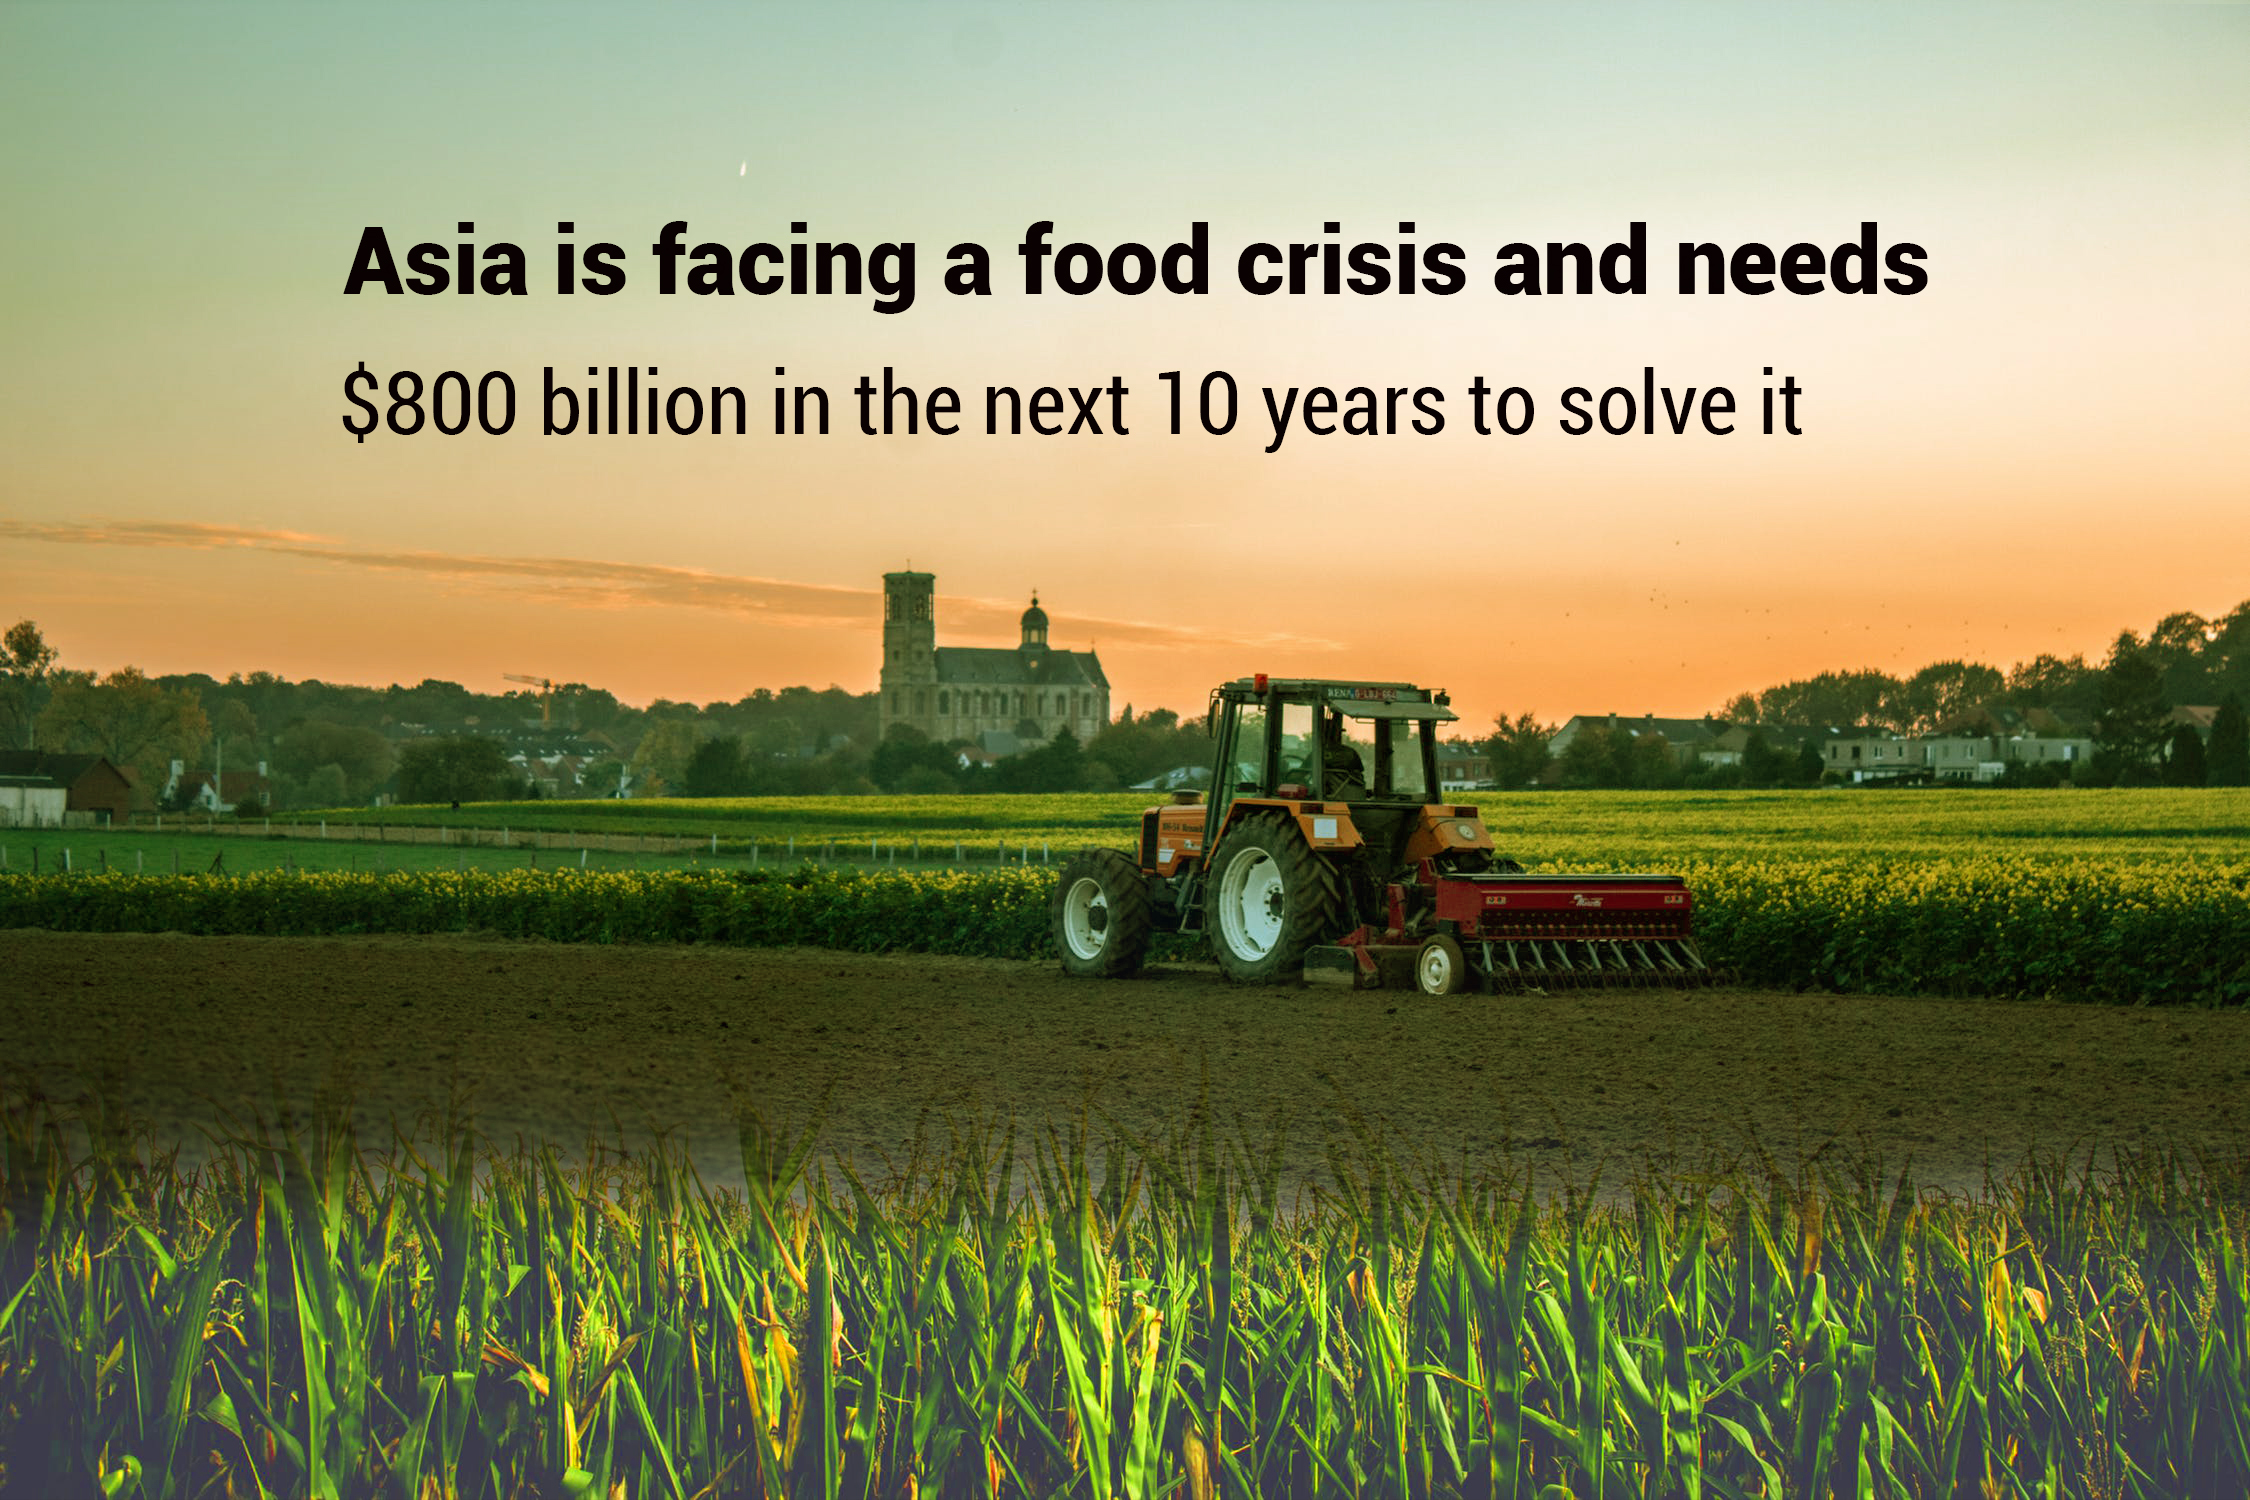 Asia unable to feed itself, needs $800 billion in the upcoming ten years